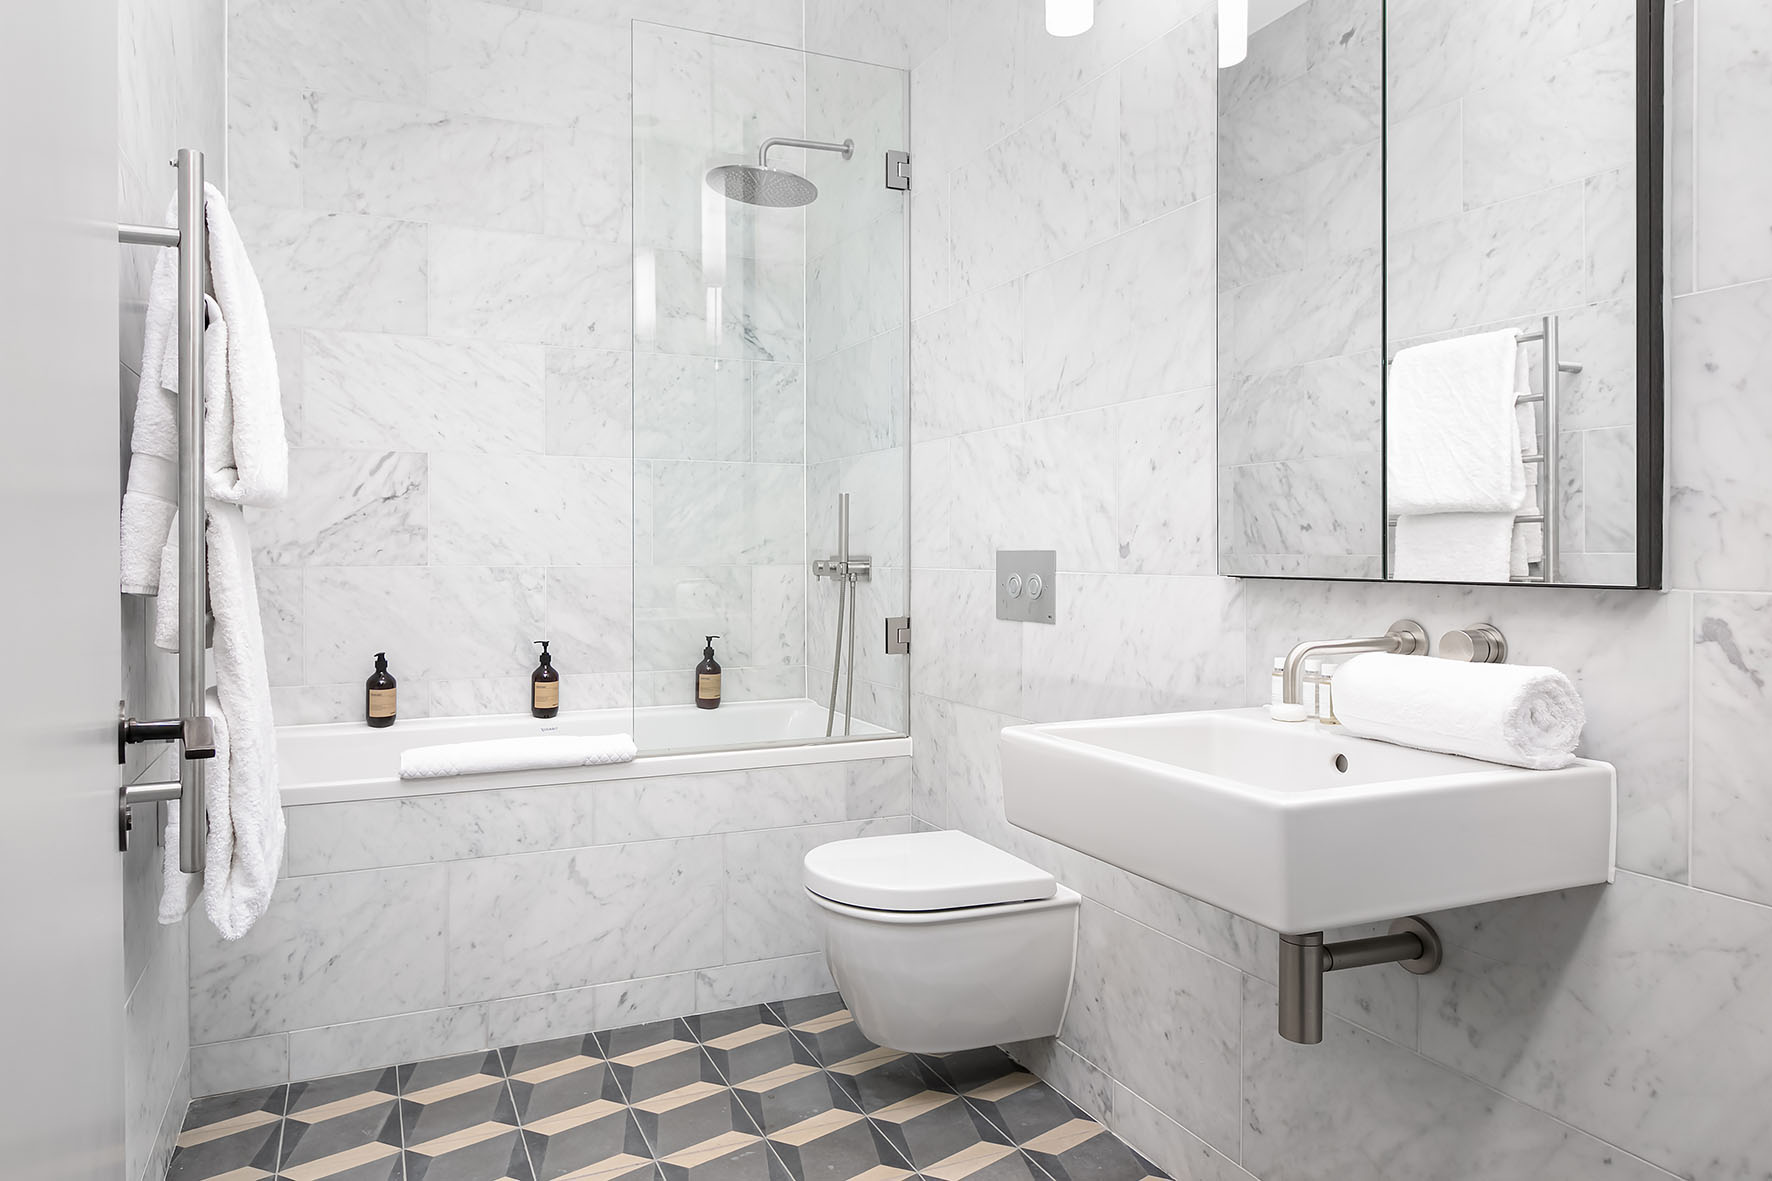 Lovelydays luxury service apartment rental - London - Soho - Berwick Street I - Lovelysuite - 3 bedrooms - 3 bathrooms - Beautiful bathtub - 0e5adb2416ec - Lovelydays